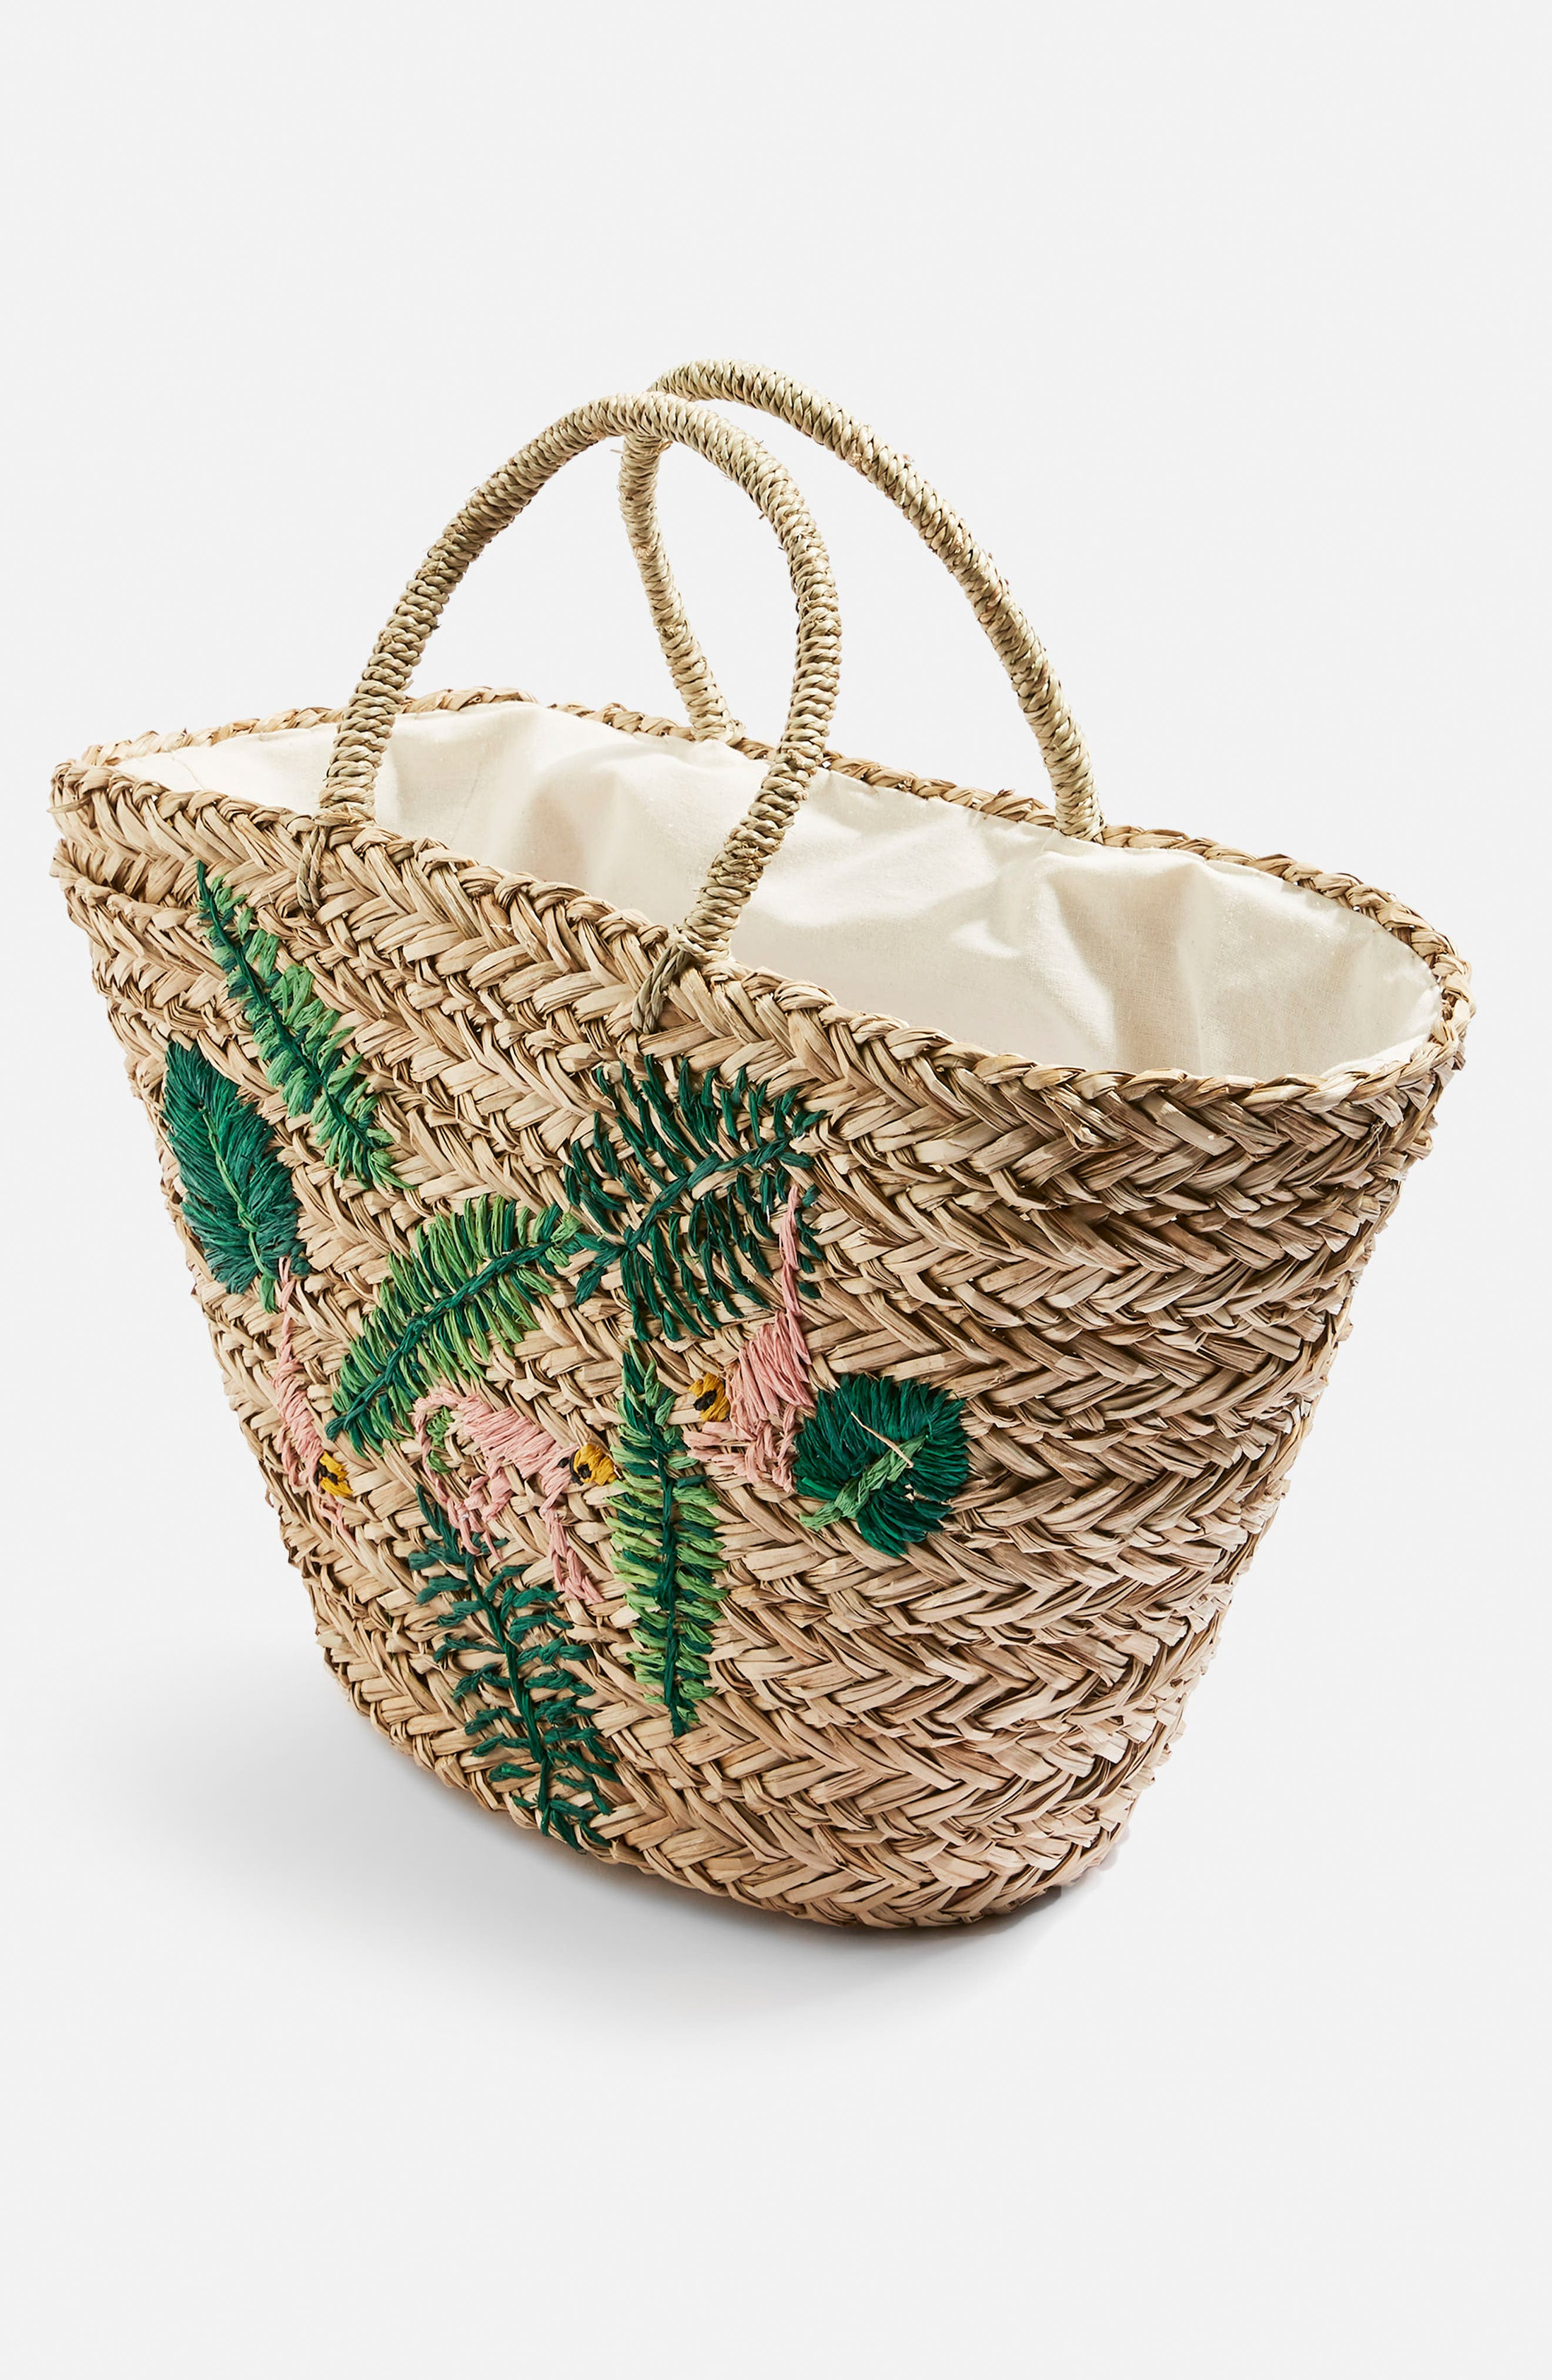 Barrio Monkey Embroidered Straw Tote Bag,                             Alternate thumbnail 4, color,                             Nude Multi